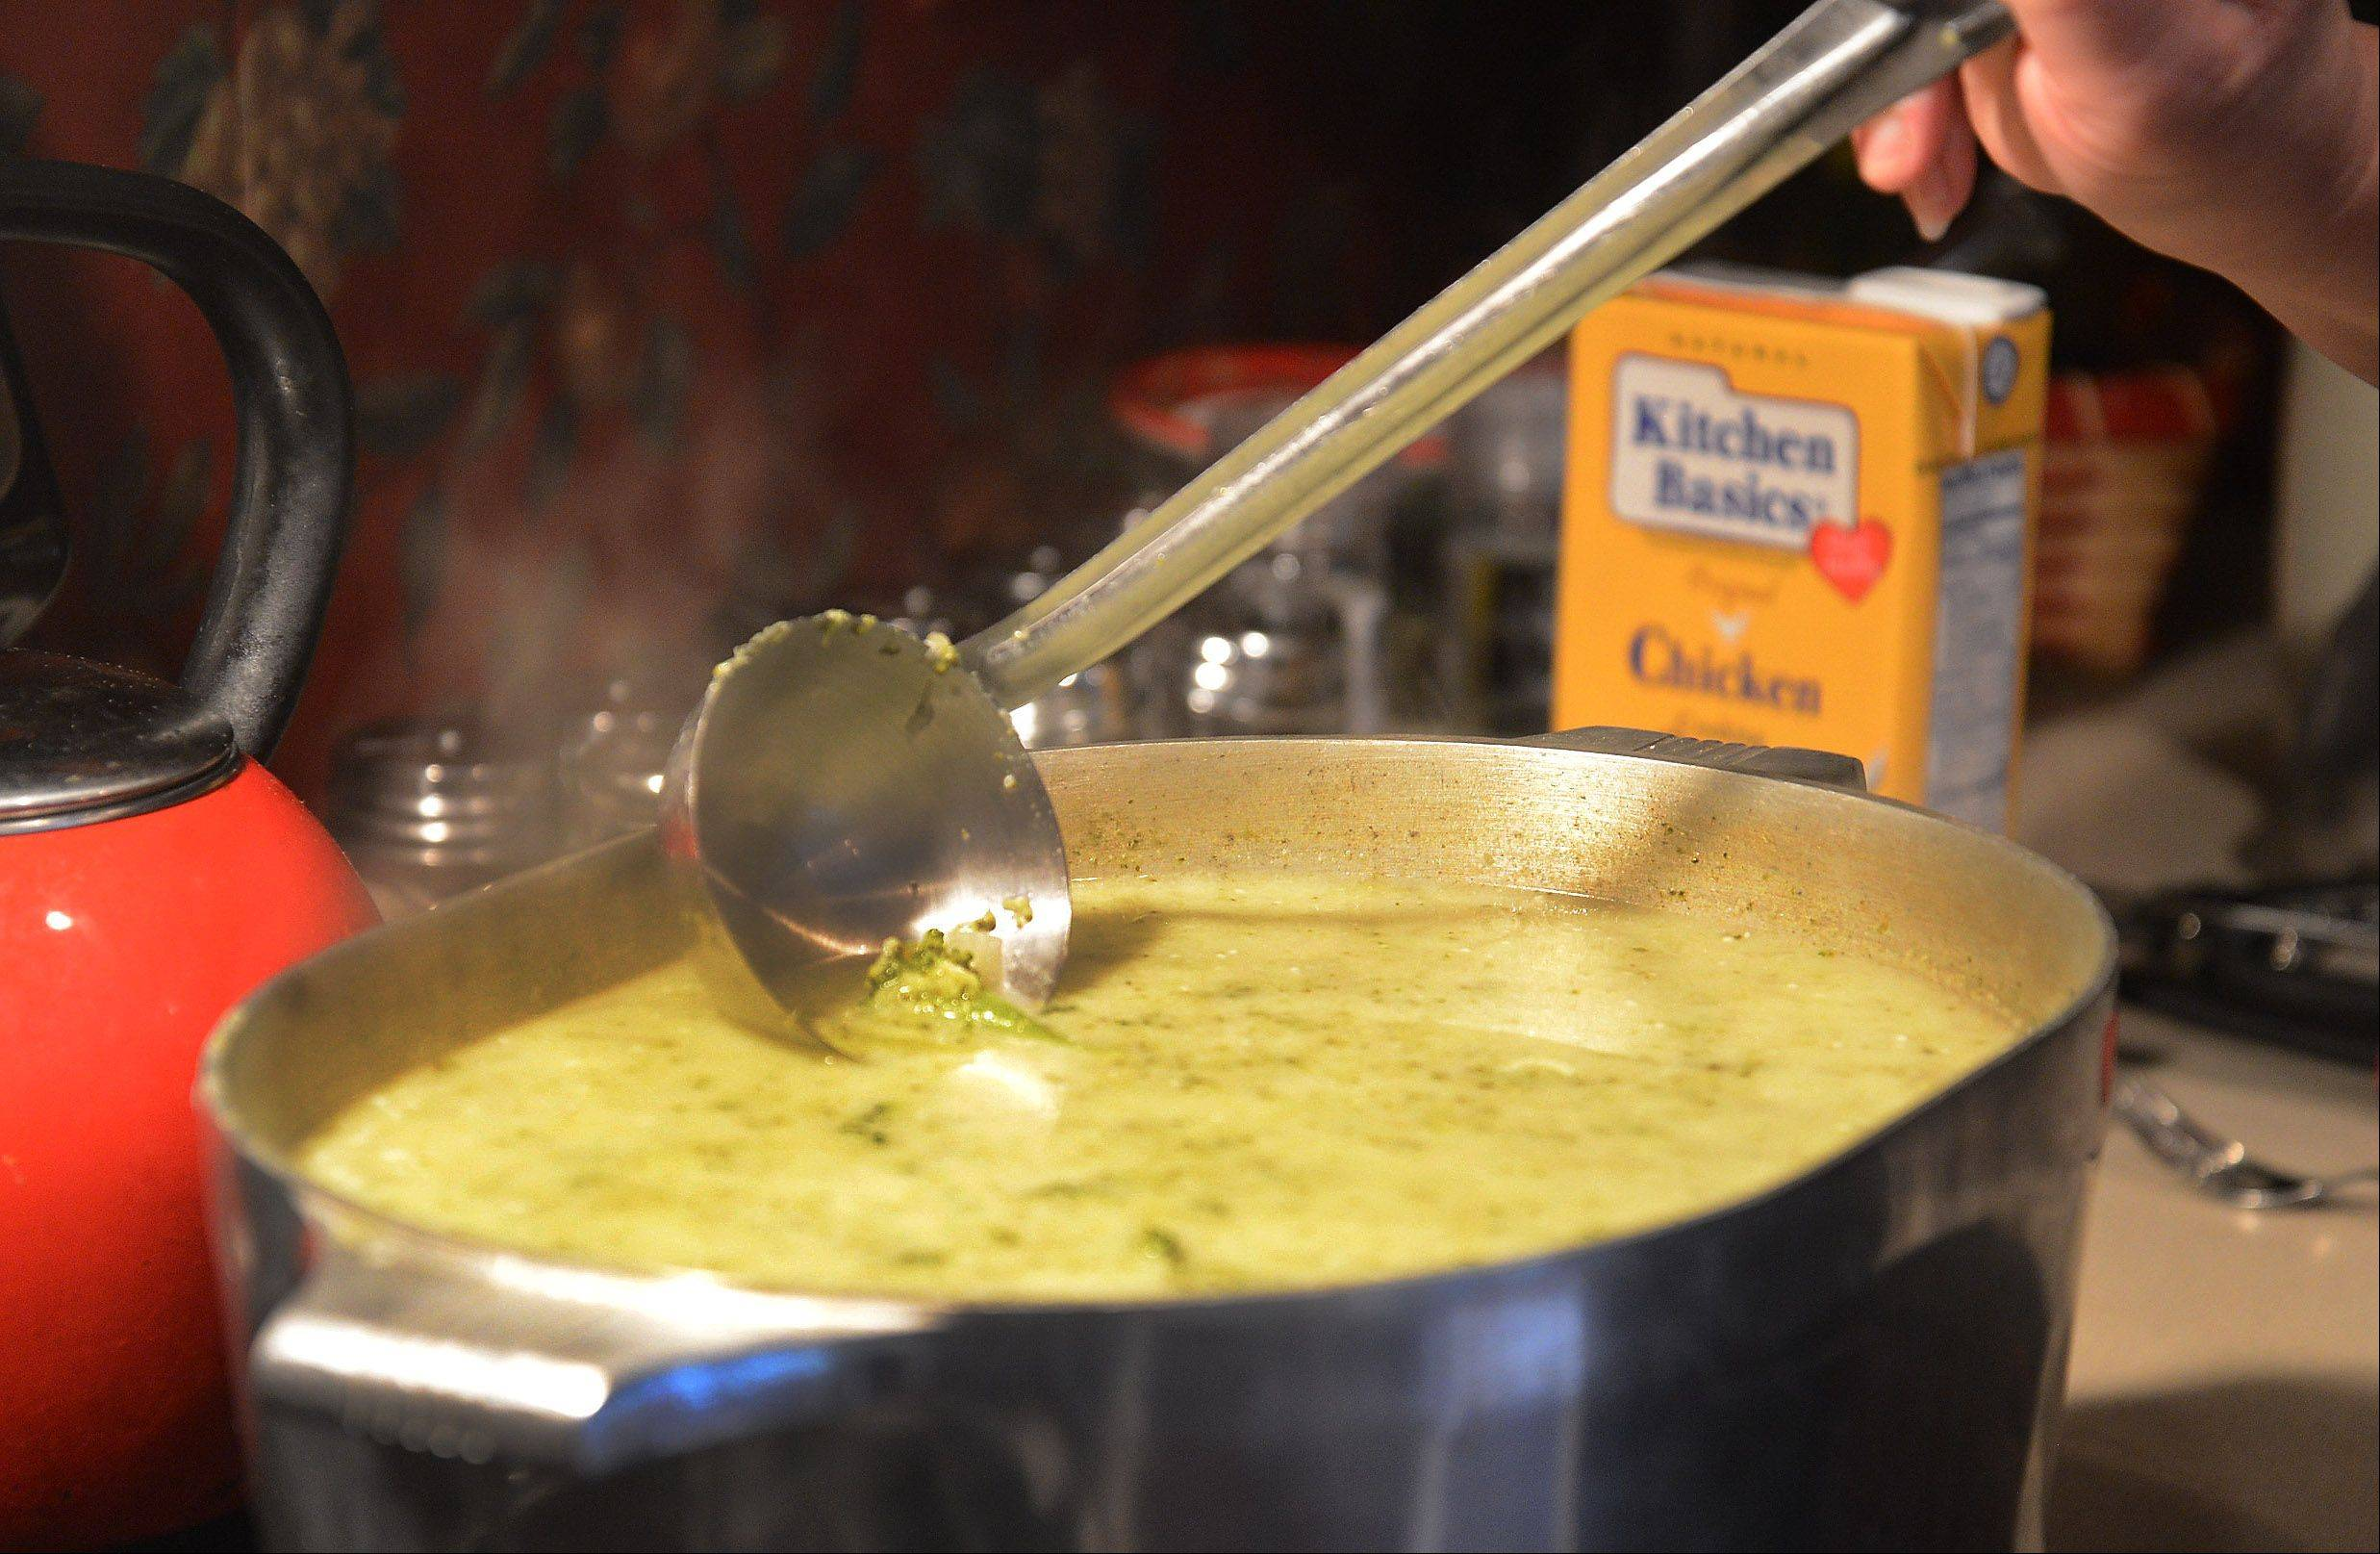 Cook of the Week Patty Nicpon adds cream cheese to boost the rich texture of her cream of broccoli soup.